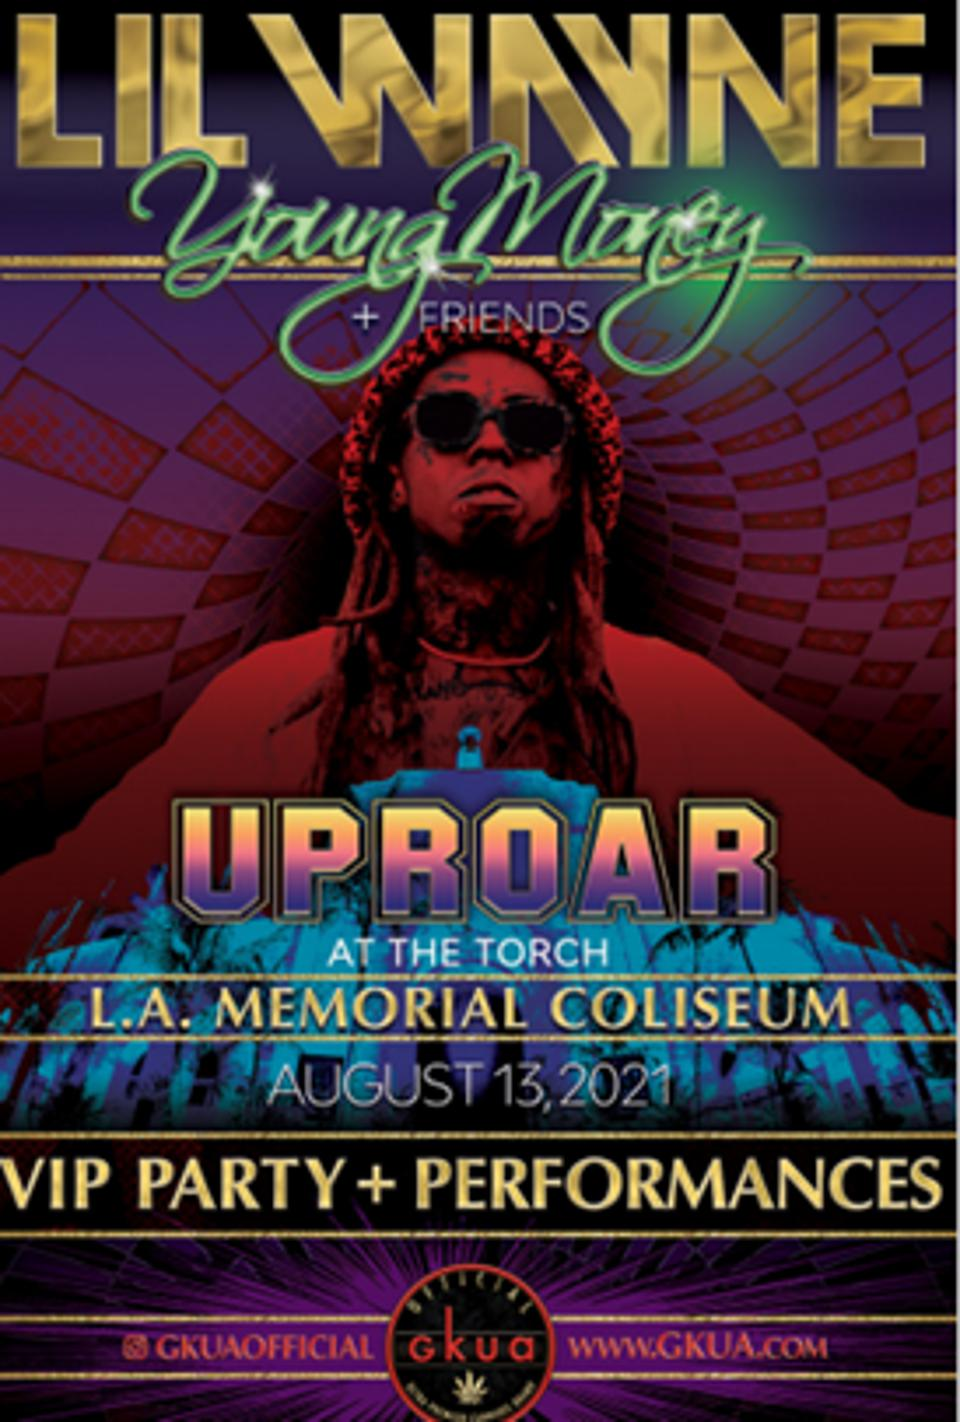 A concert poster for Uproar at the Torch is slated for August 13, 2021 at the L.A. Coliseum.